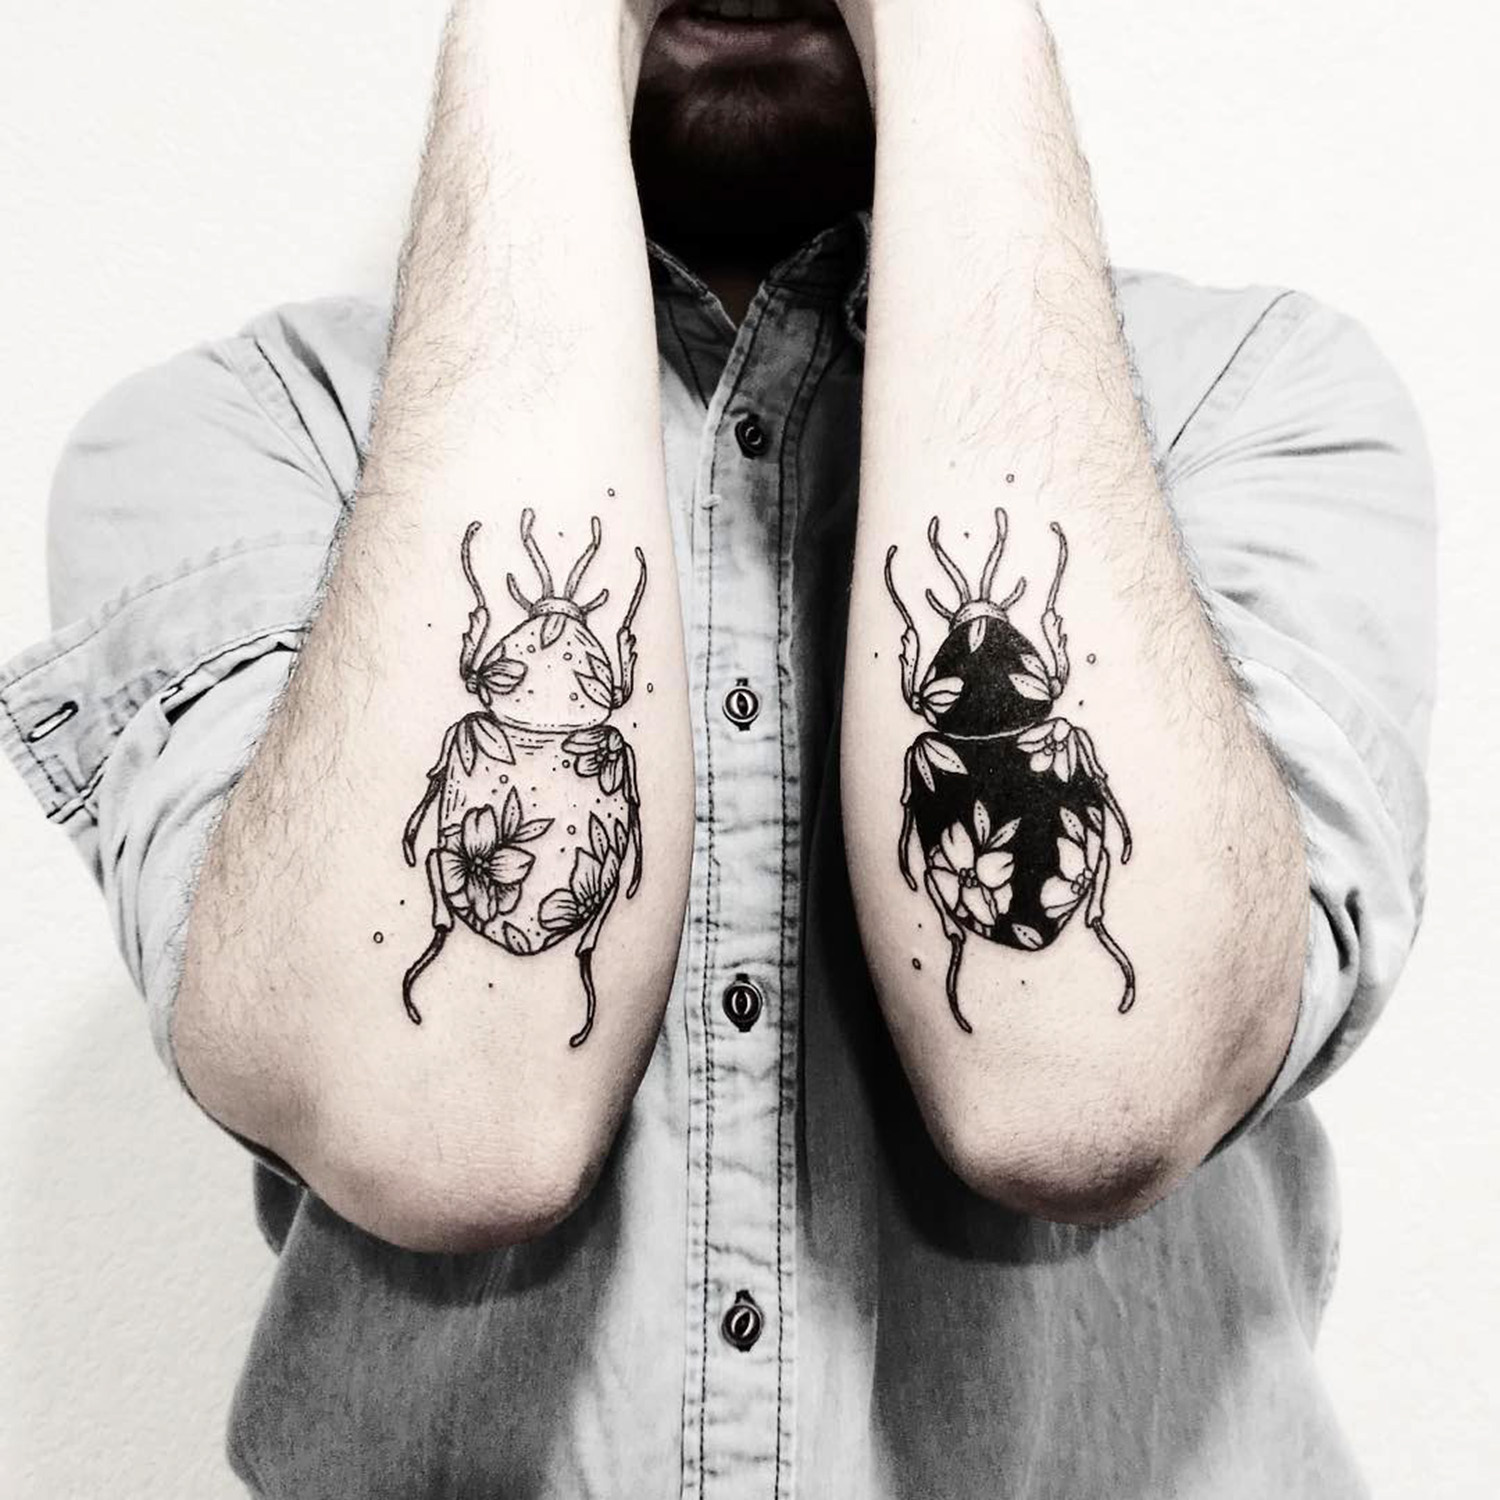 Beetles on arms